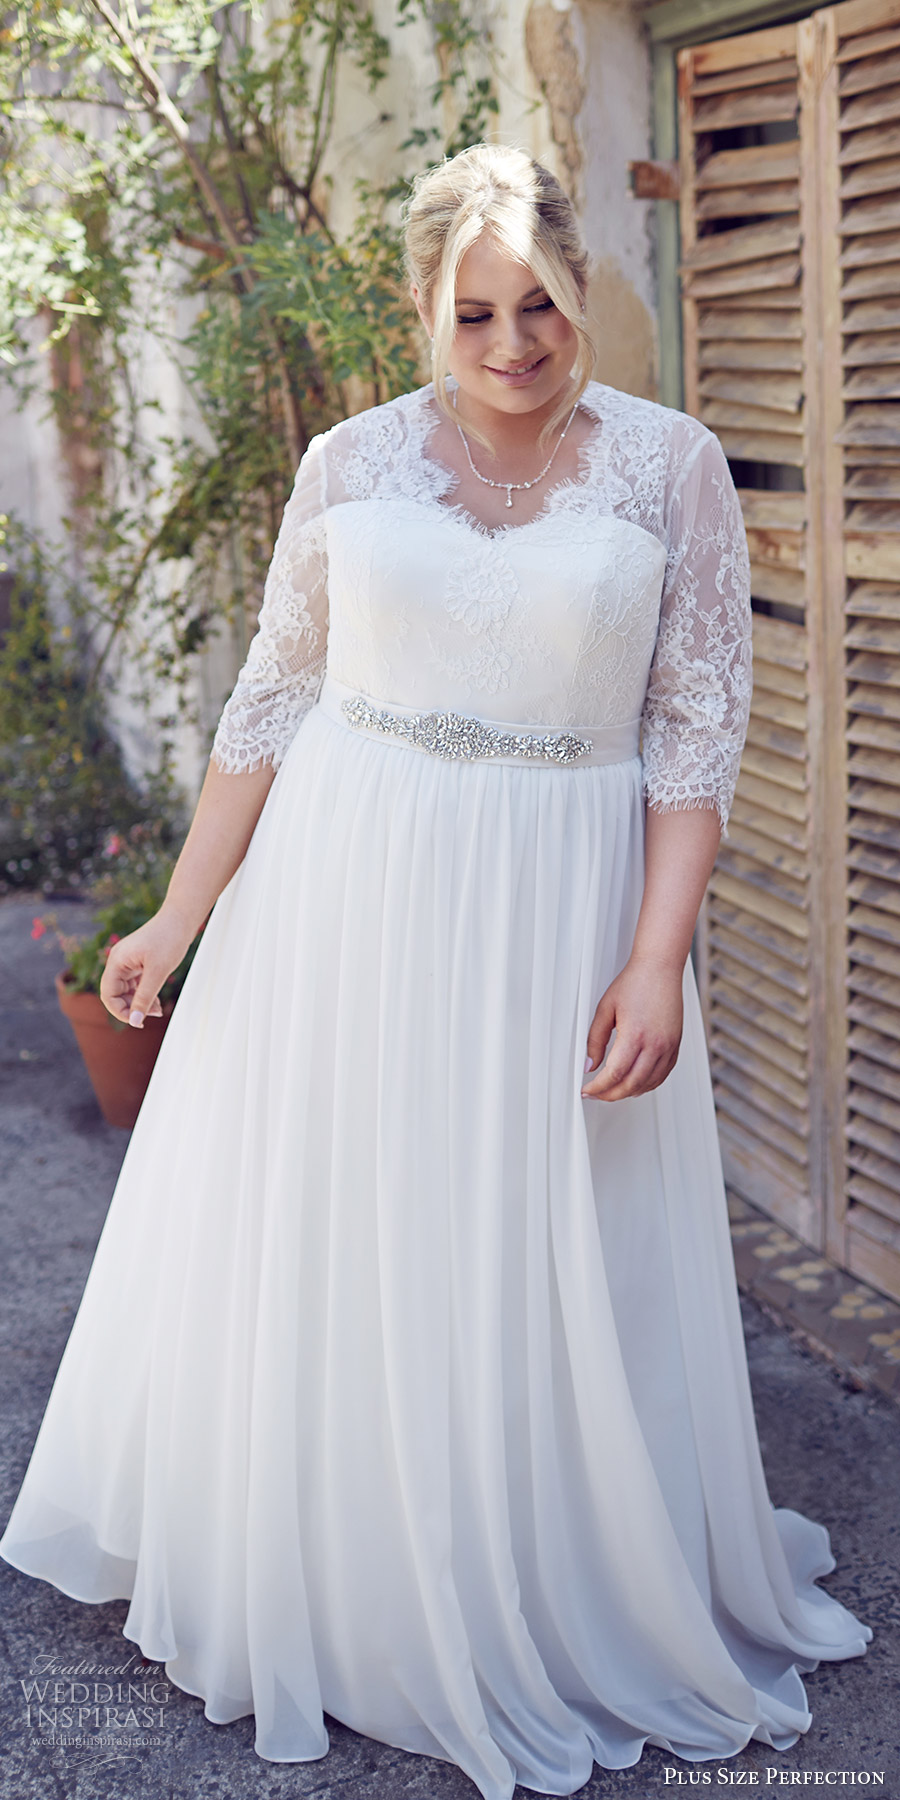 Plus Size Perfection Wedding Dresses Its A Love Story Campaign